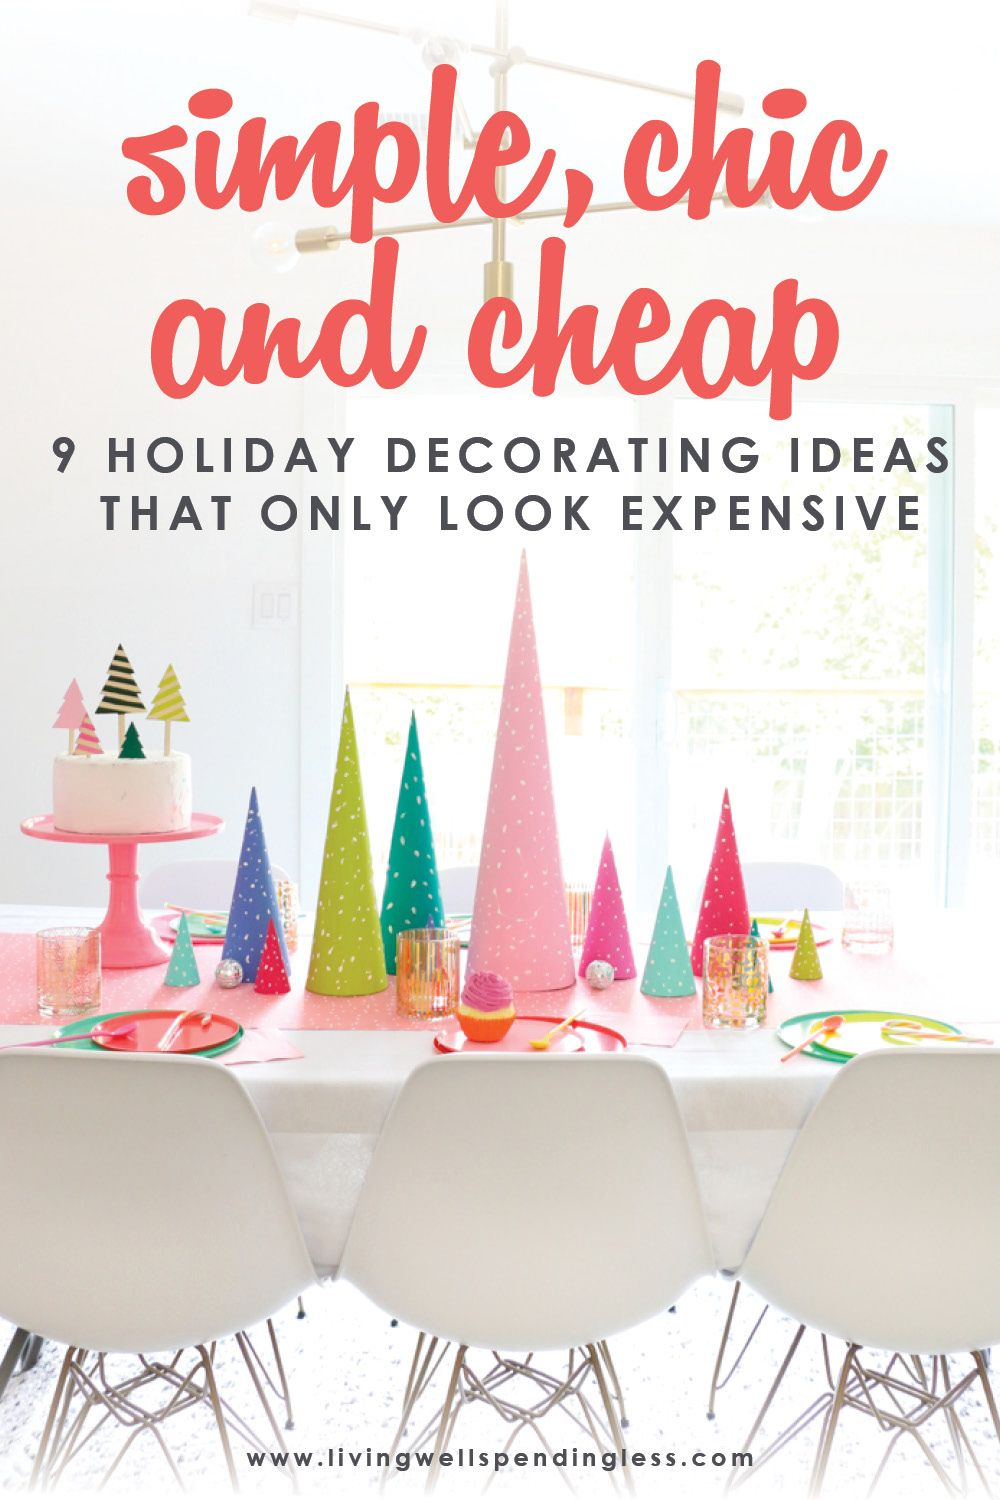 Simple Chic Cheap 9 Holiday Decorating Ideas That Look Expensive In 2020 Diy Holiday Decor Diy Holiday Holiday Decor